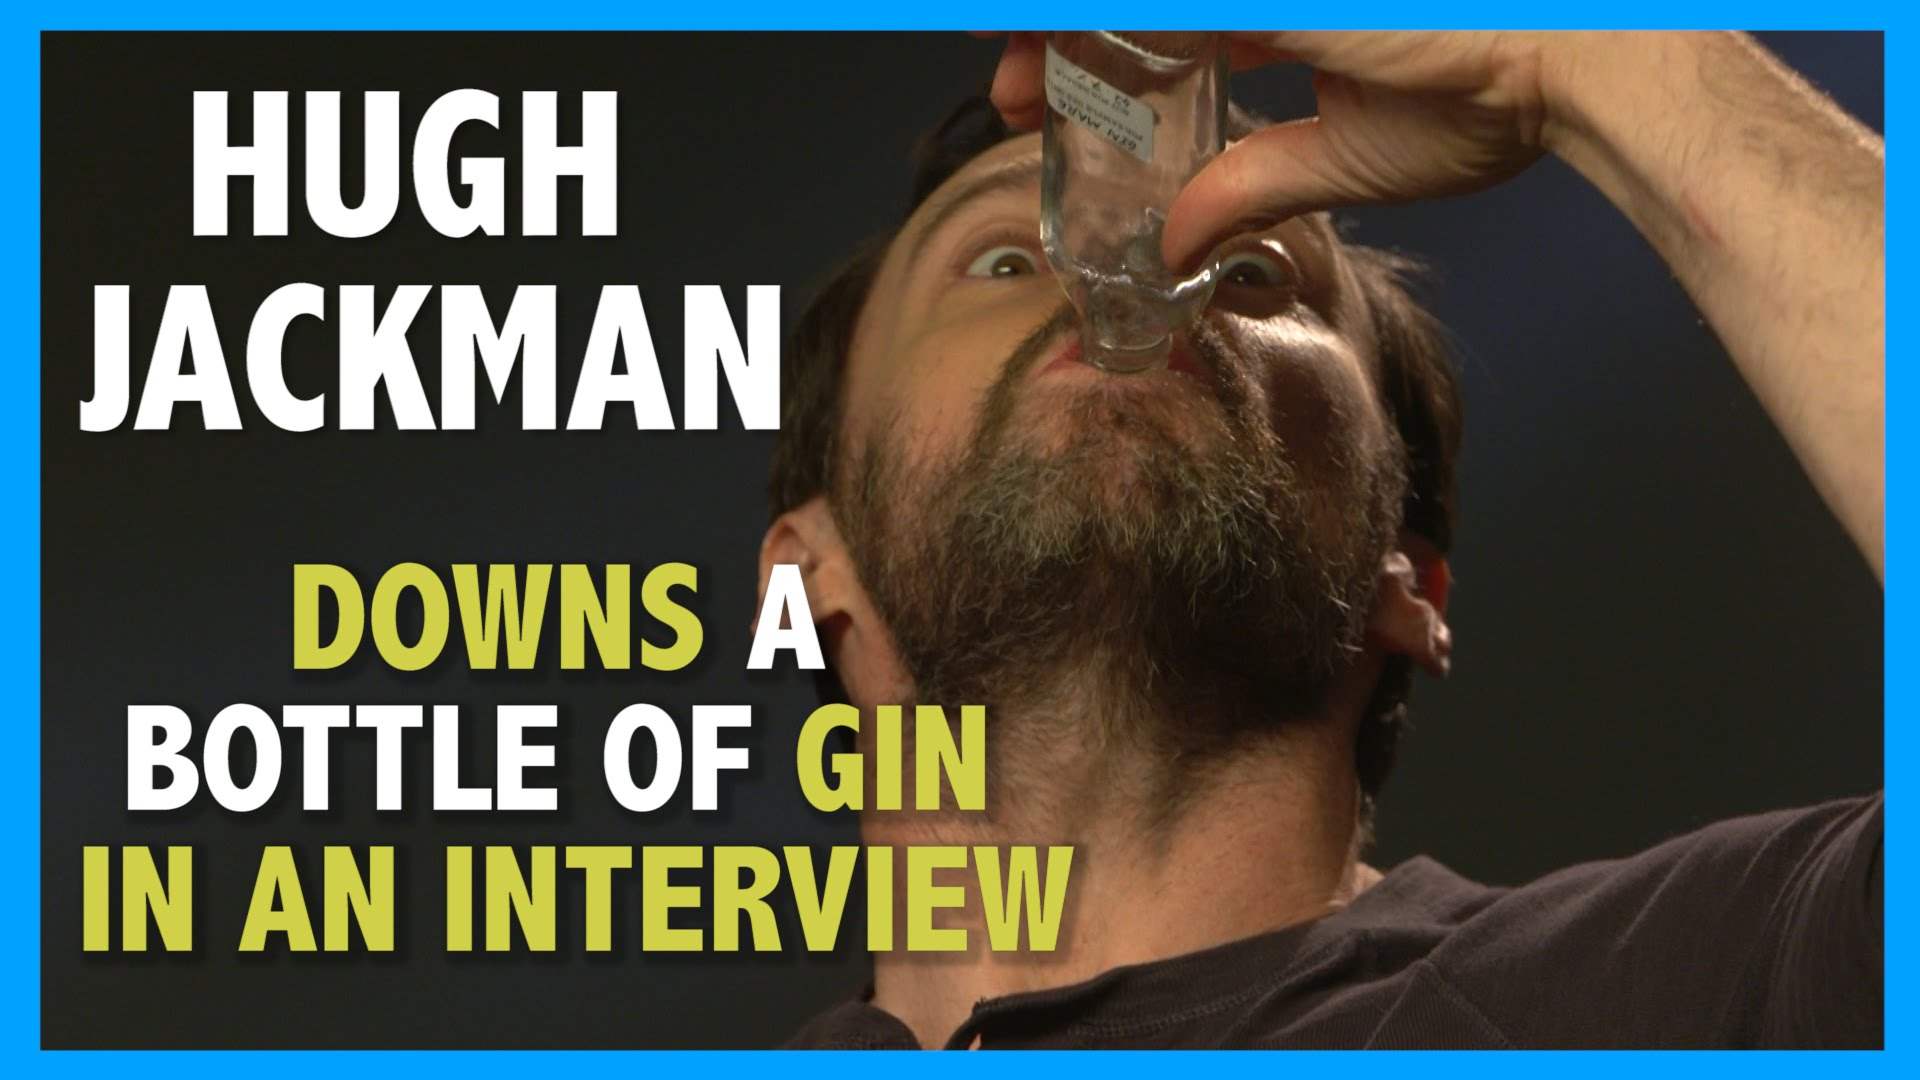 Just another REASON why Hugh Jackman is our HERO..